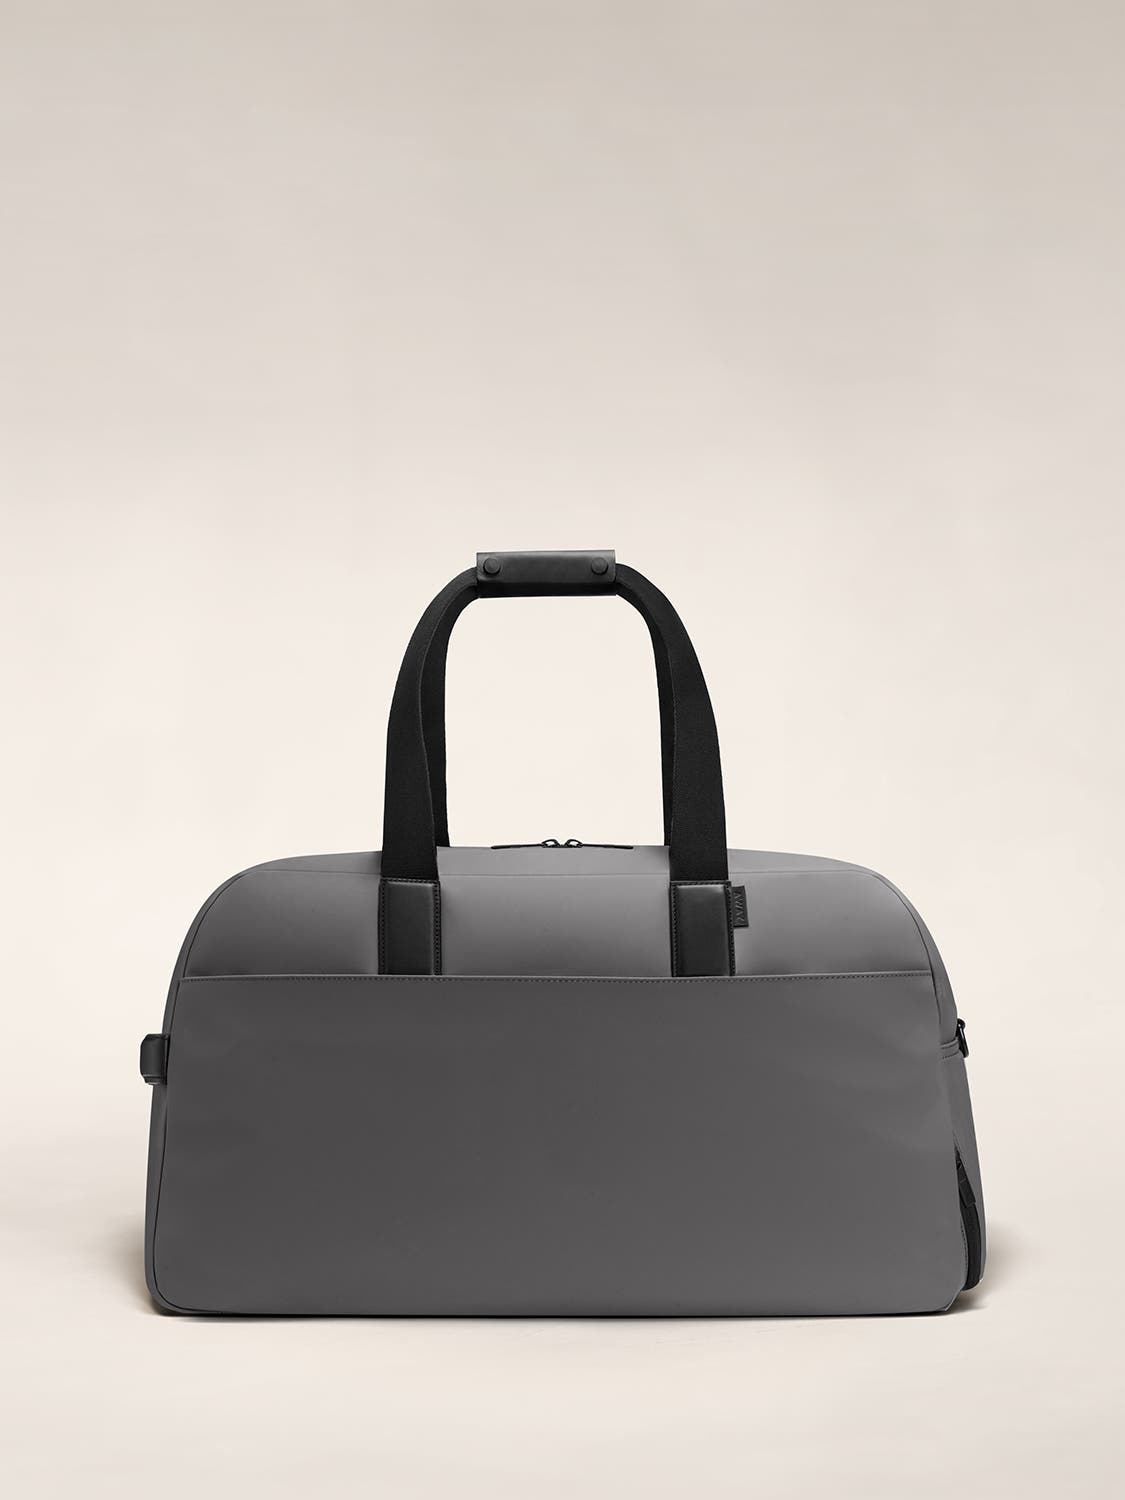 A nylon duffle bag in the color asphalt with black leather trim.